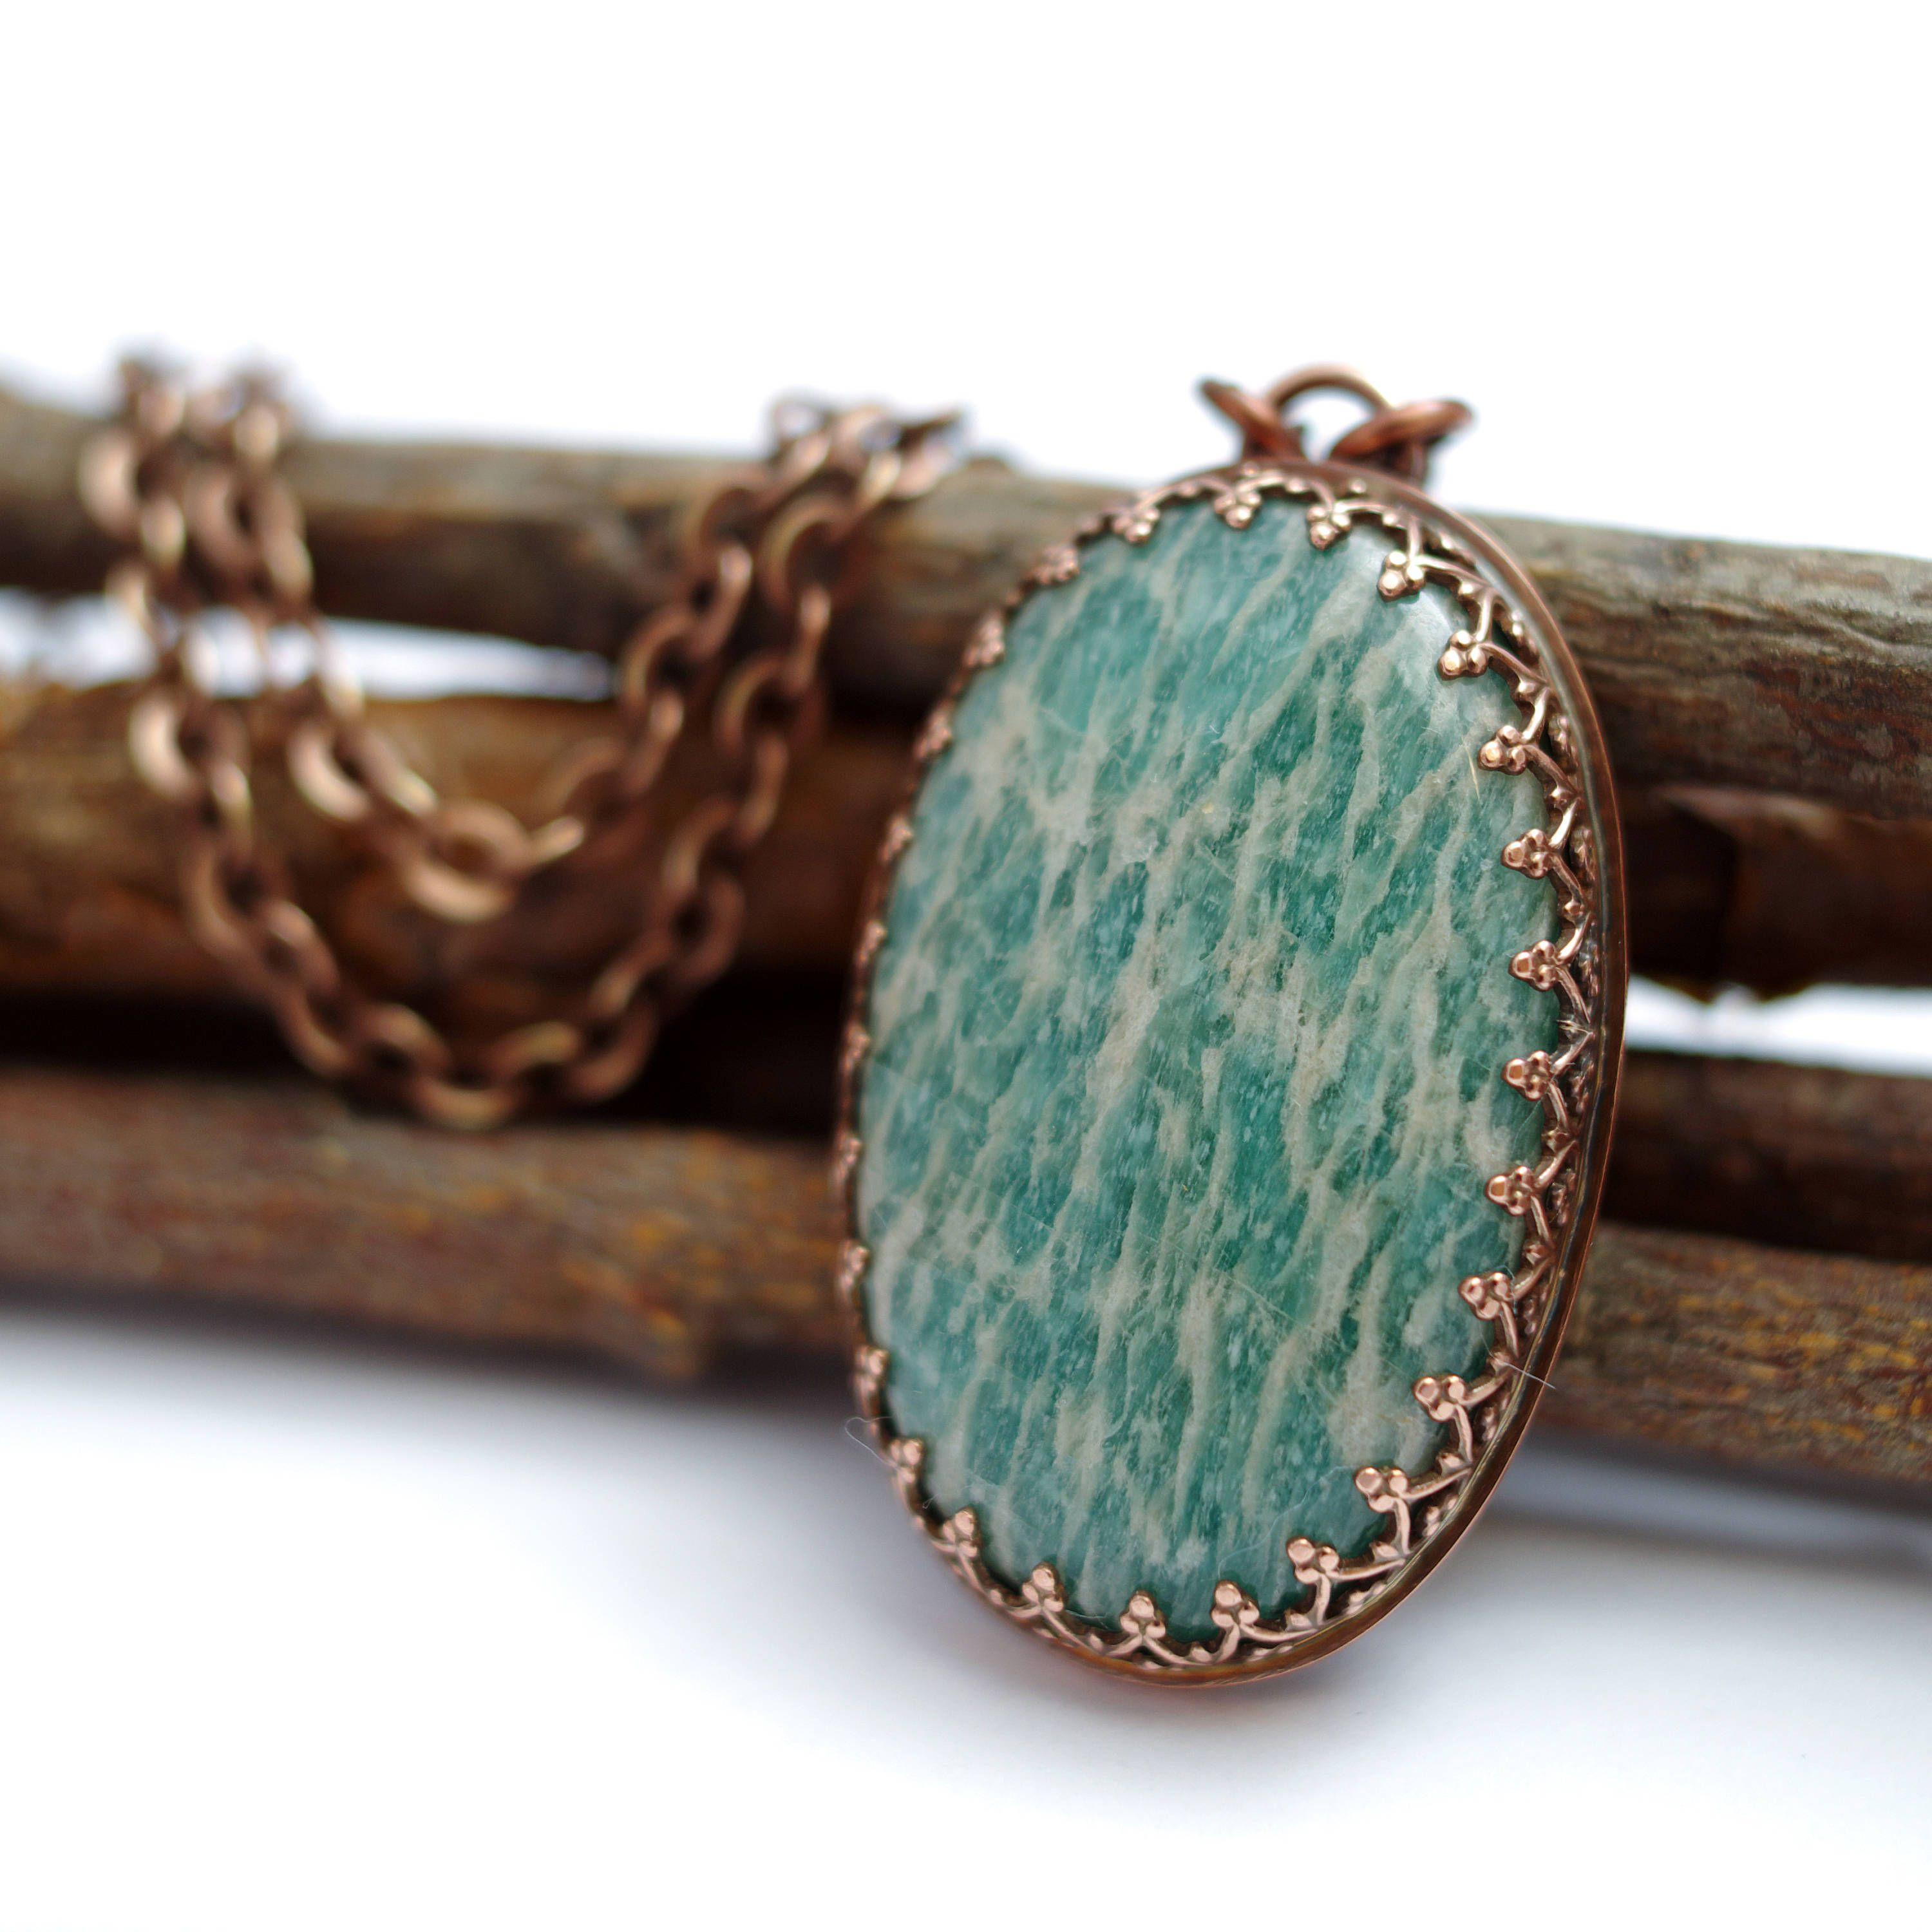 7th Wedding Anniversary Gift Ideas For Her: Copper Gifts For Her